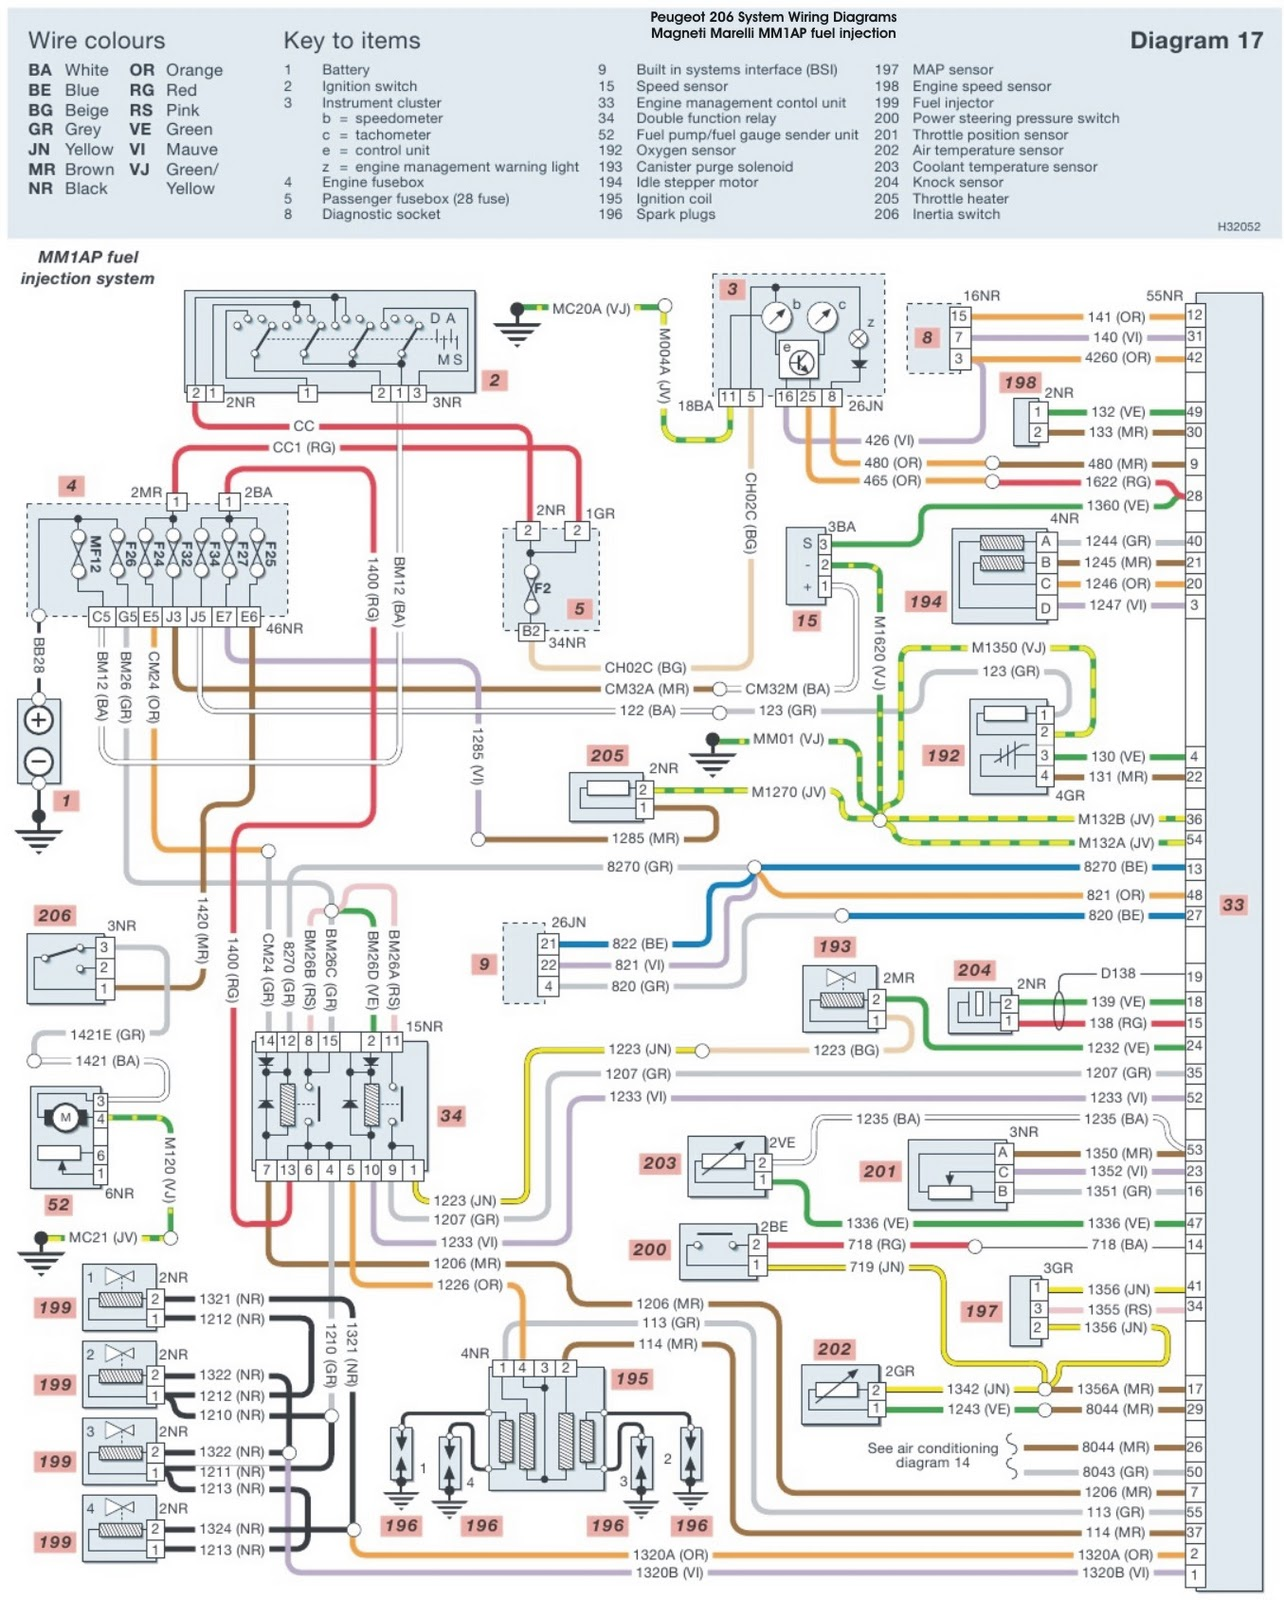 Peugeot 206 Wiring Diagram User Manual : V manual peugeot fuel injection system wiring diagrams